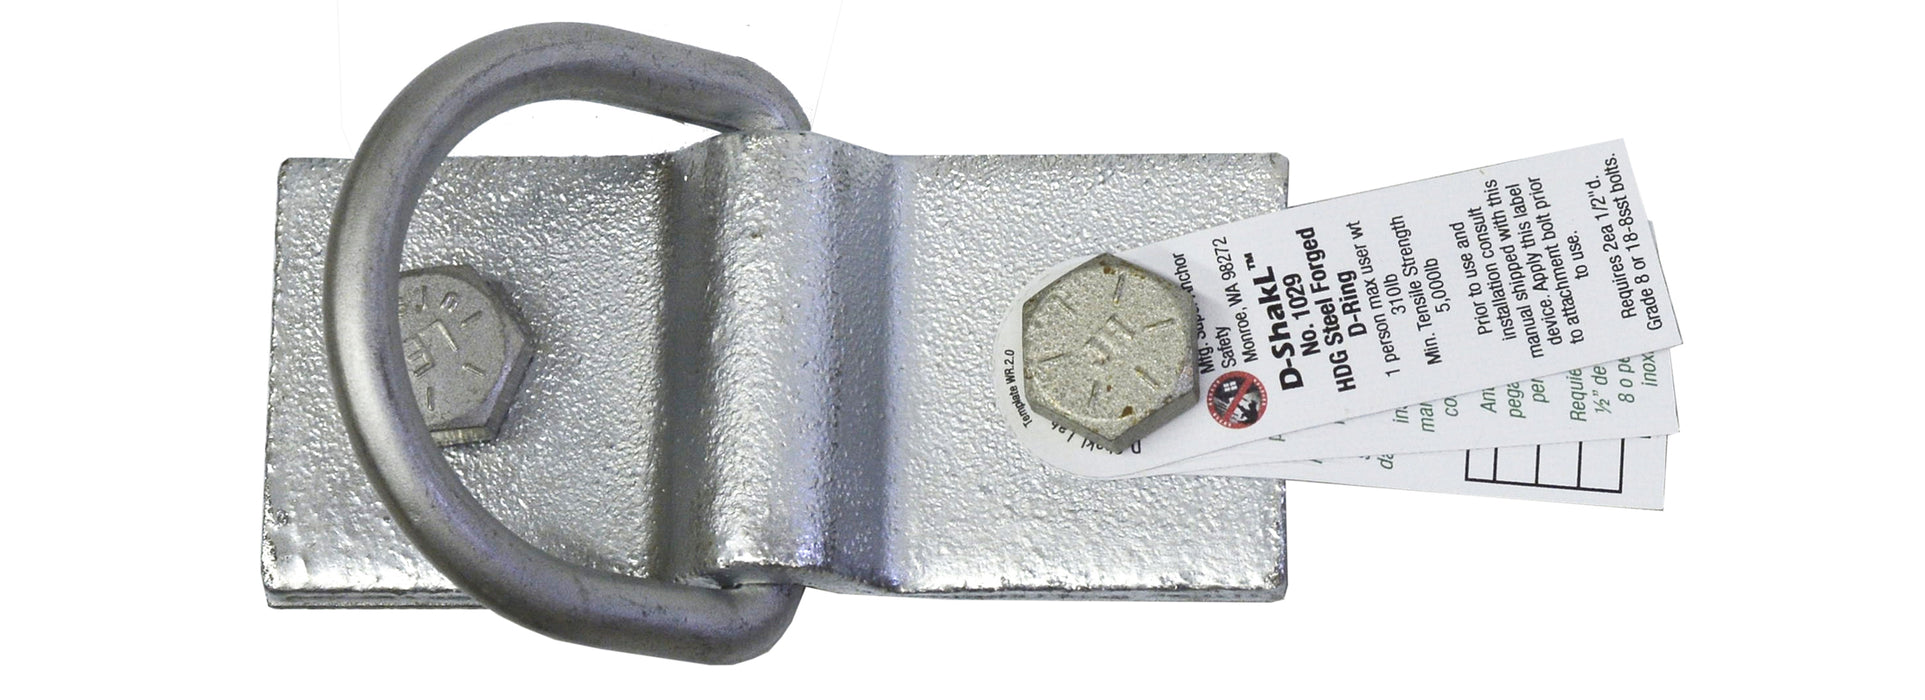 Super Anchor D-ShakL Shackle Safety Anchor with 180-Degree rotating D-Ring - 1029